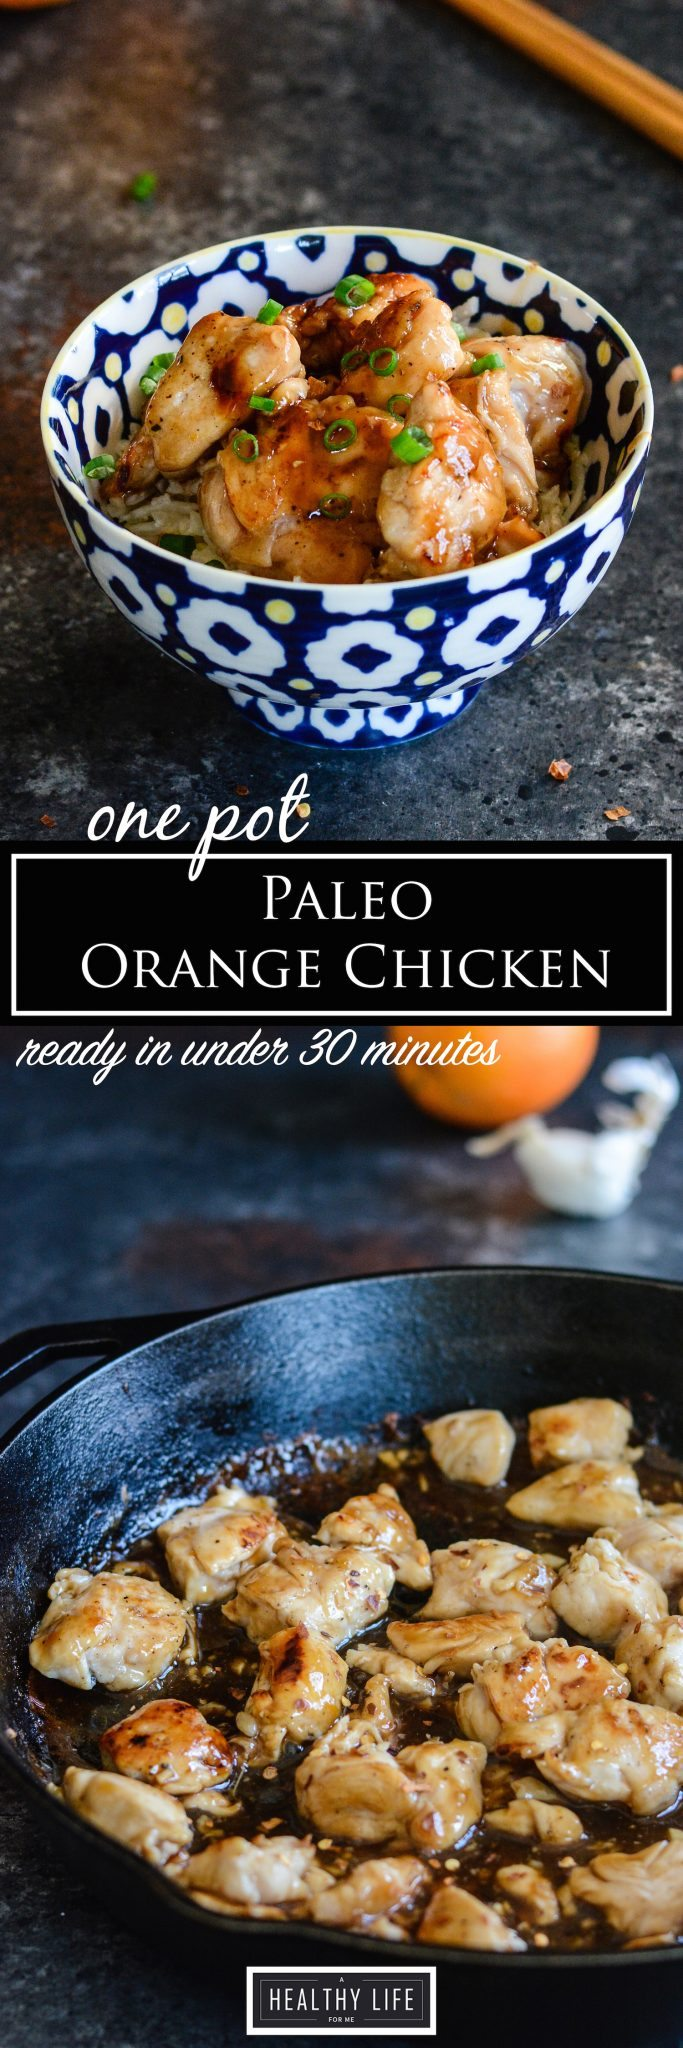 Paleo Orange Chicken One Pot Under 30 minute Recipe | ahealthylifeforme.com